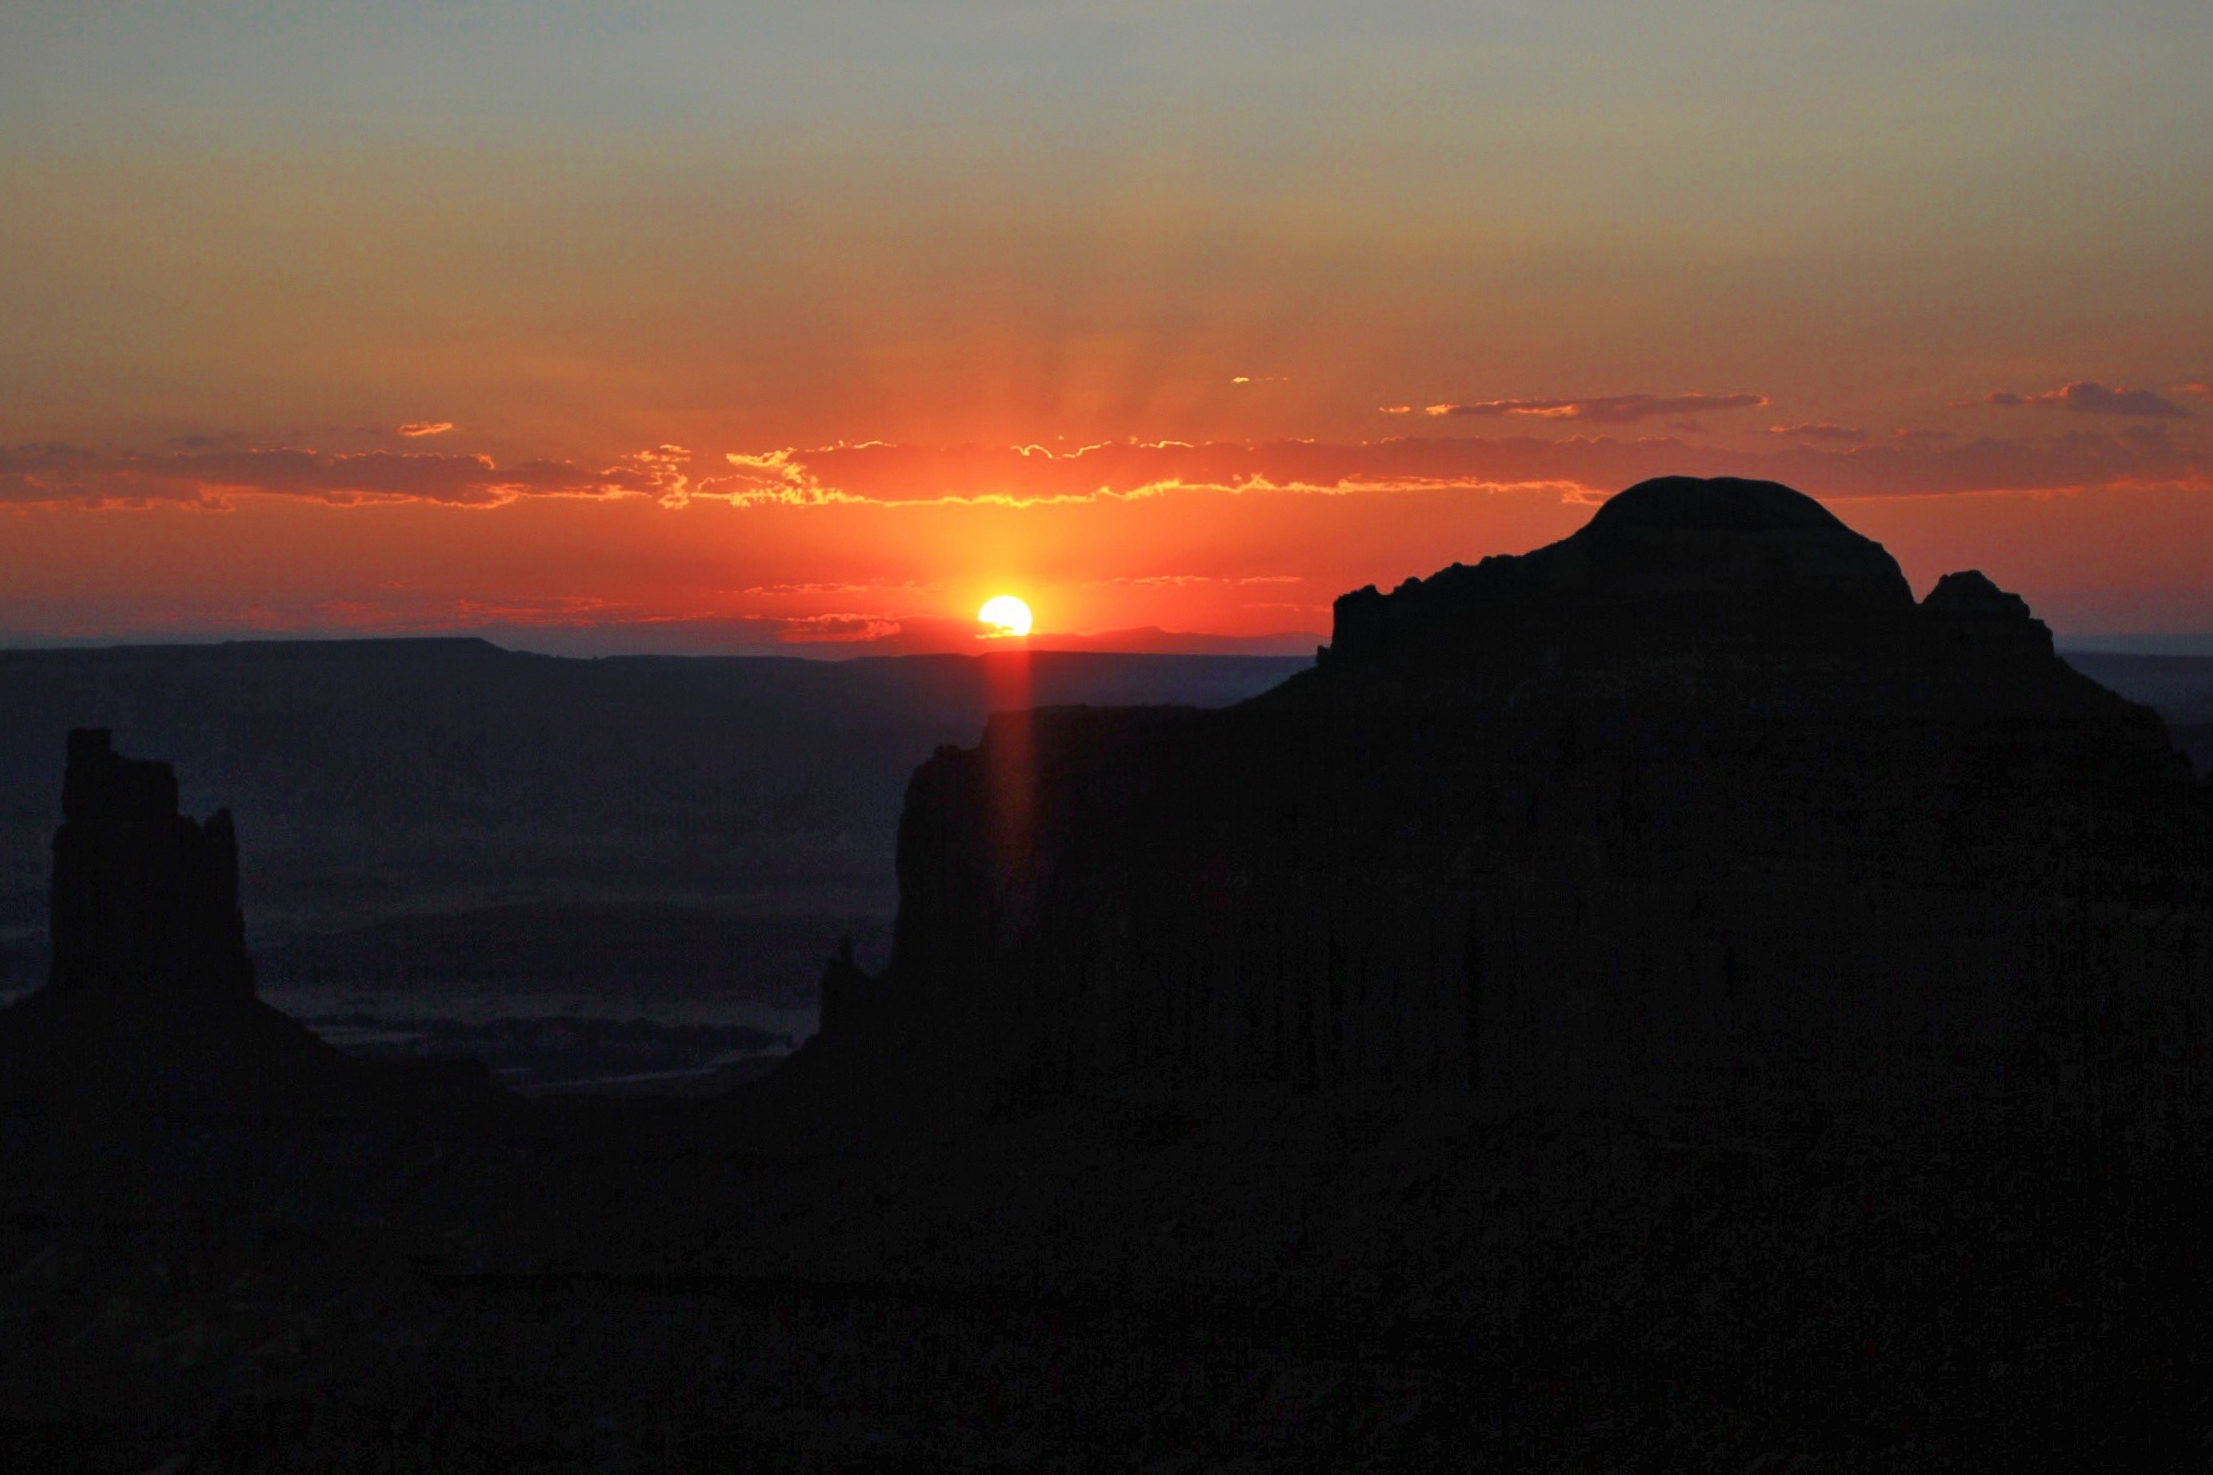 Sunset at Green River Overlook - we sprinted here from our campsite to catch it just in time